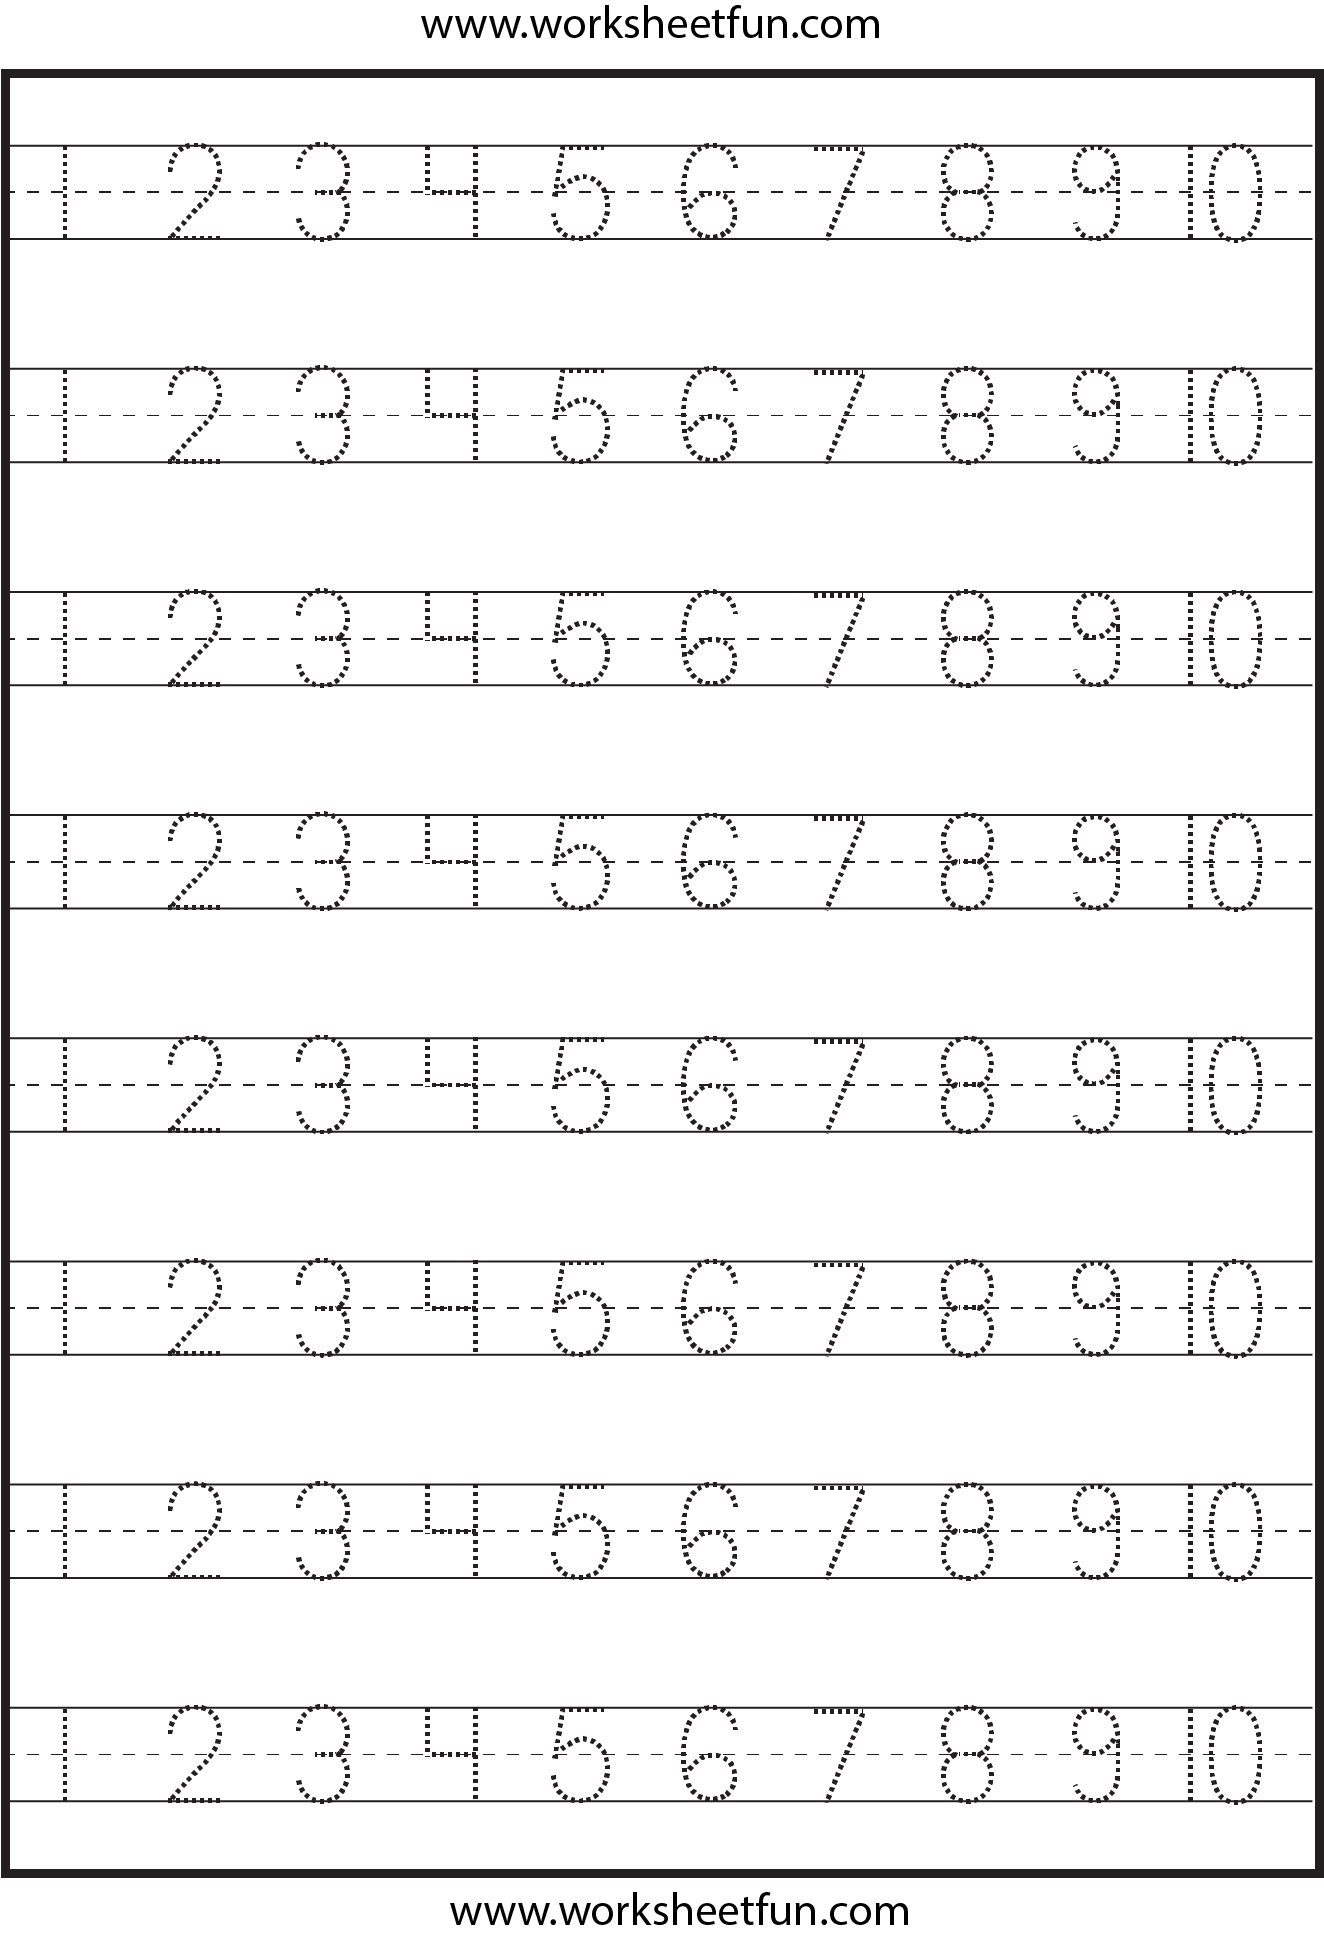 Worksheets Number Tracing Worksheets 1-10 number tracing 1 10 worksheet free printable worksheets tracing